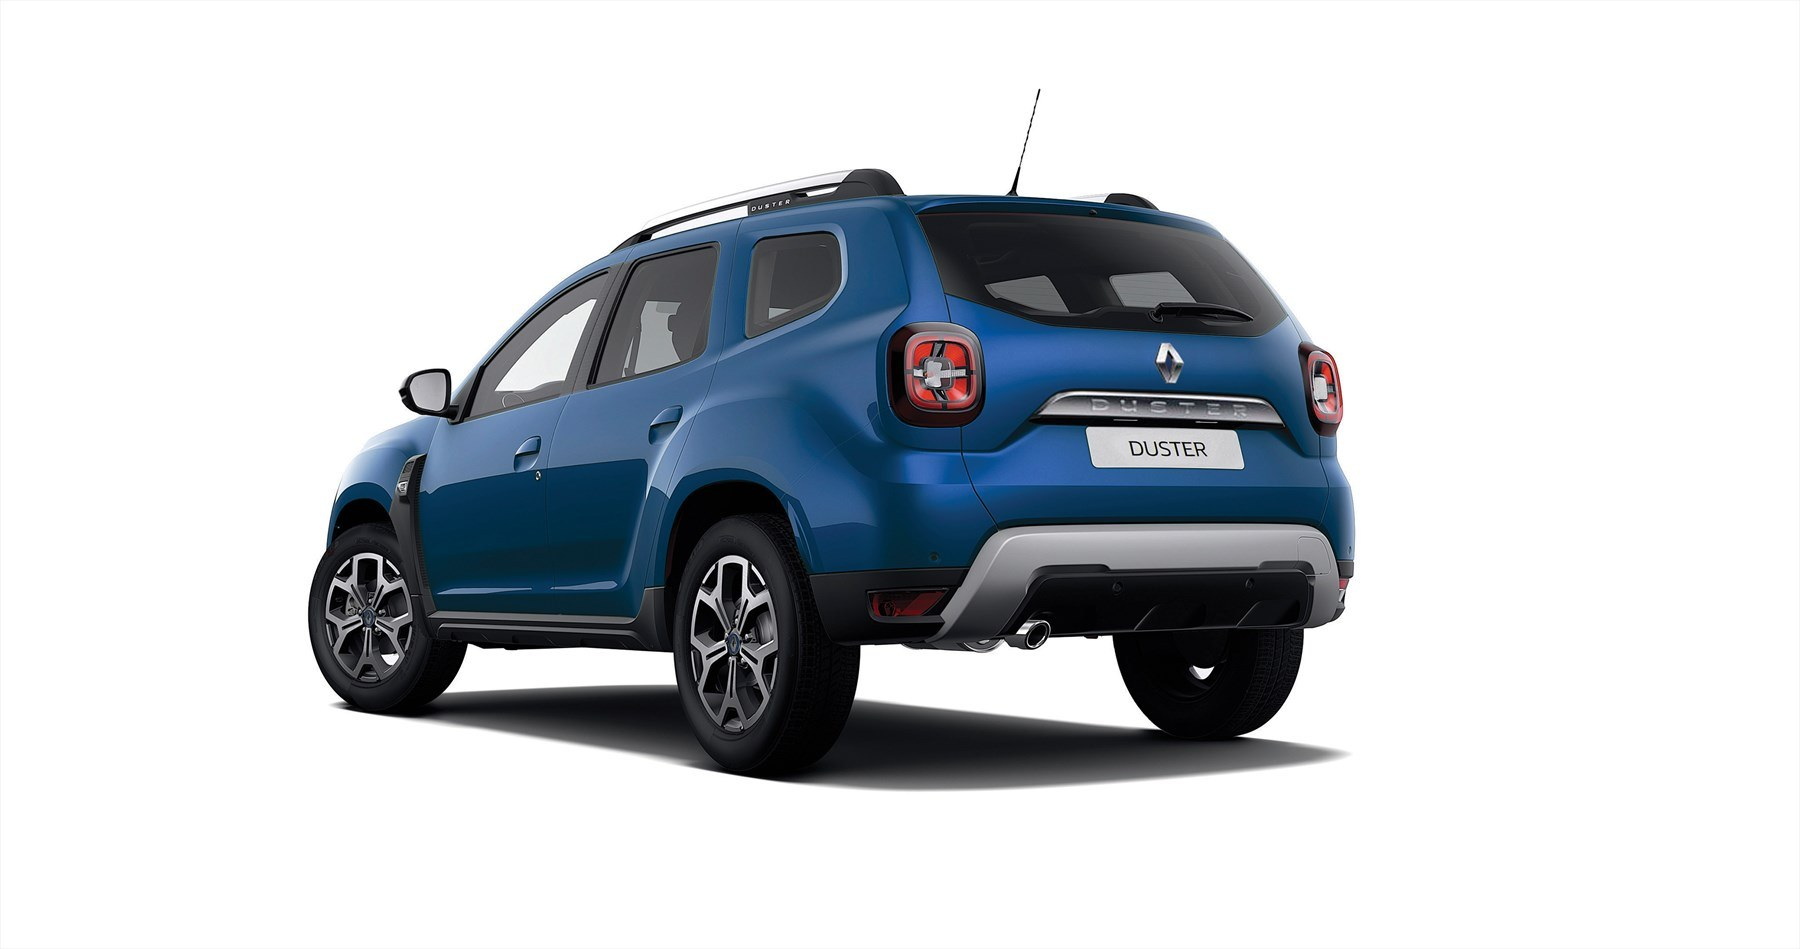 Renault duster techroad2020 3q rear 1800x1800